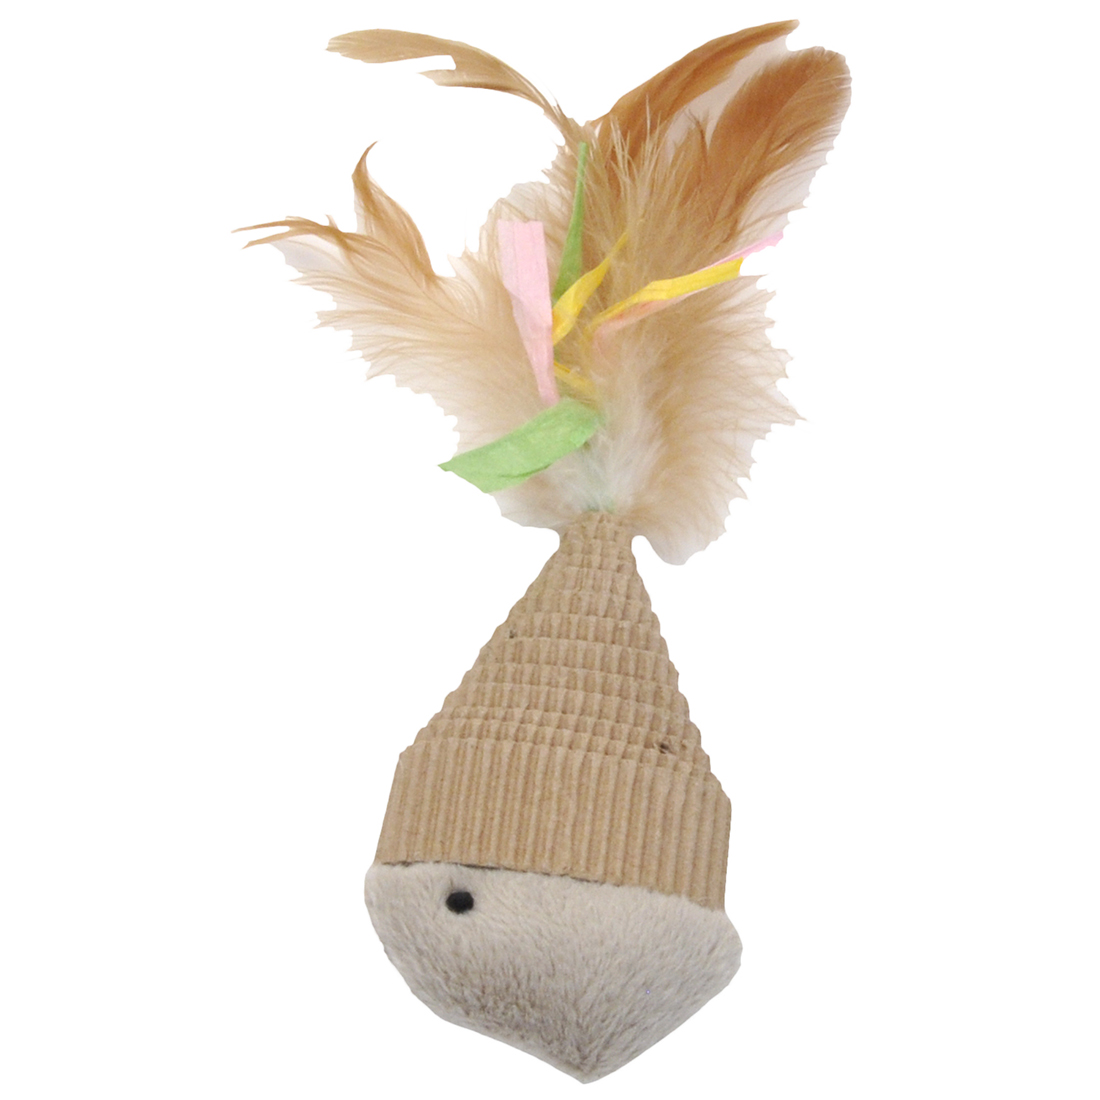 Coastal 'Turbo' Natural Corrugated Fish Cat Toy